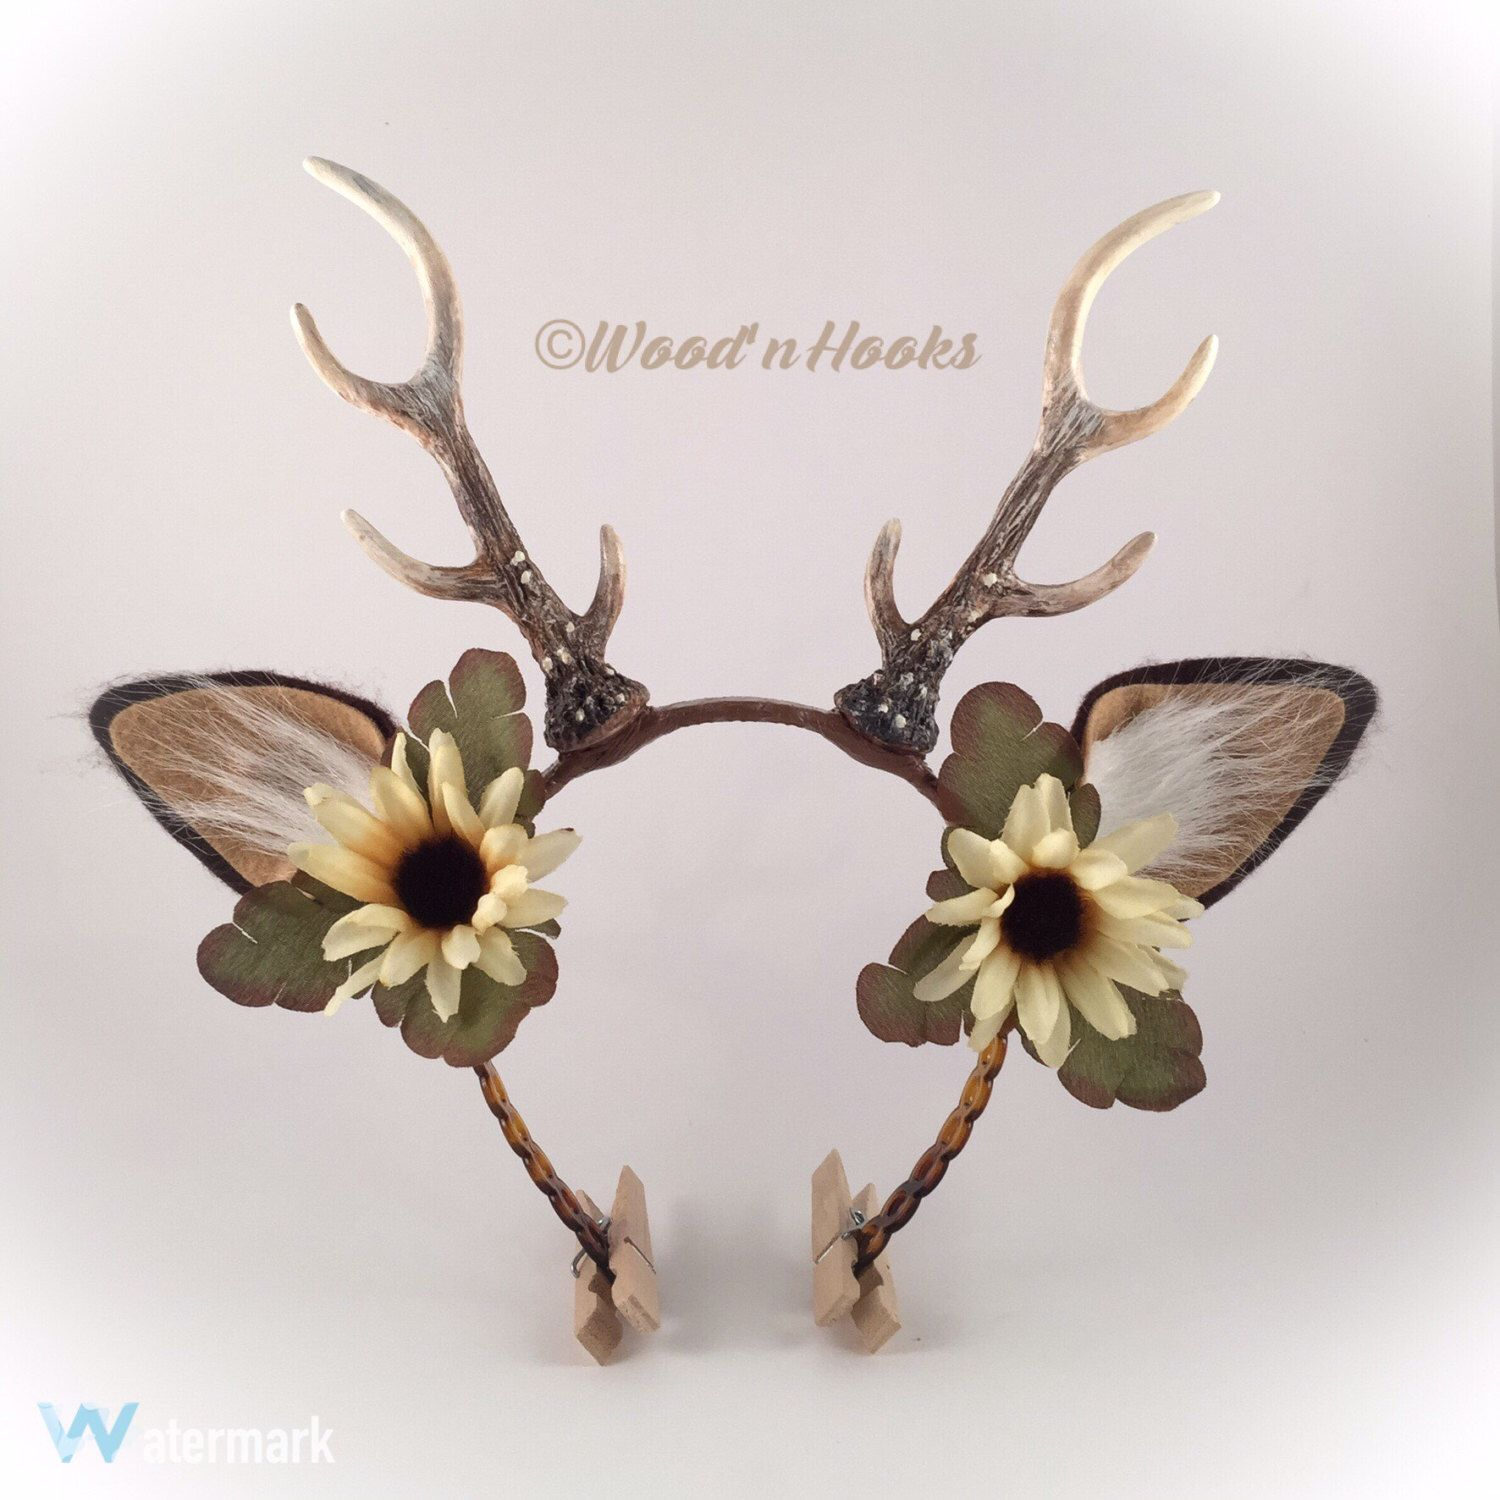 Comments about Spirit Halloween Deer Antlers: Bought these to wear for a deer costume. The antlers themselves are cute and realistic enough, but the strap that holds them to your head isn't sturdy enough to support the antlers so they kept falling forward/5(5).